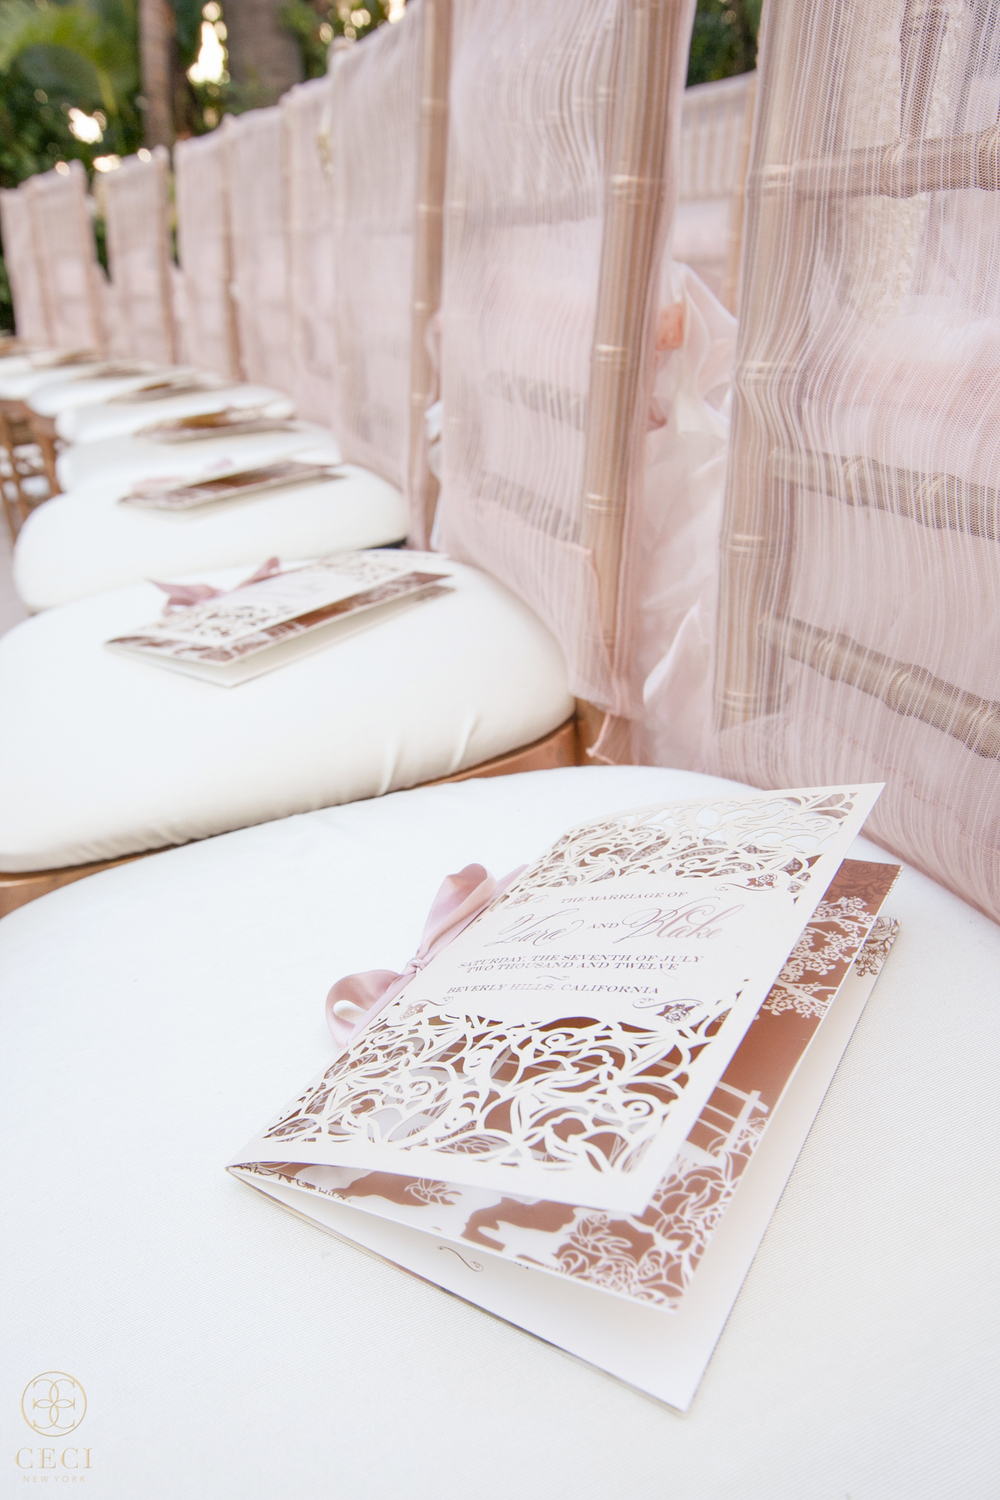 rose_gold_pink_romantic_real_wedding_roses_inspiration_cecinewyork_cecistyle_v152-2.1.jpg